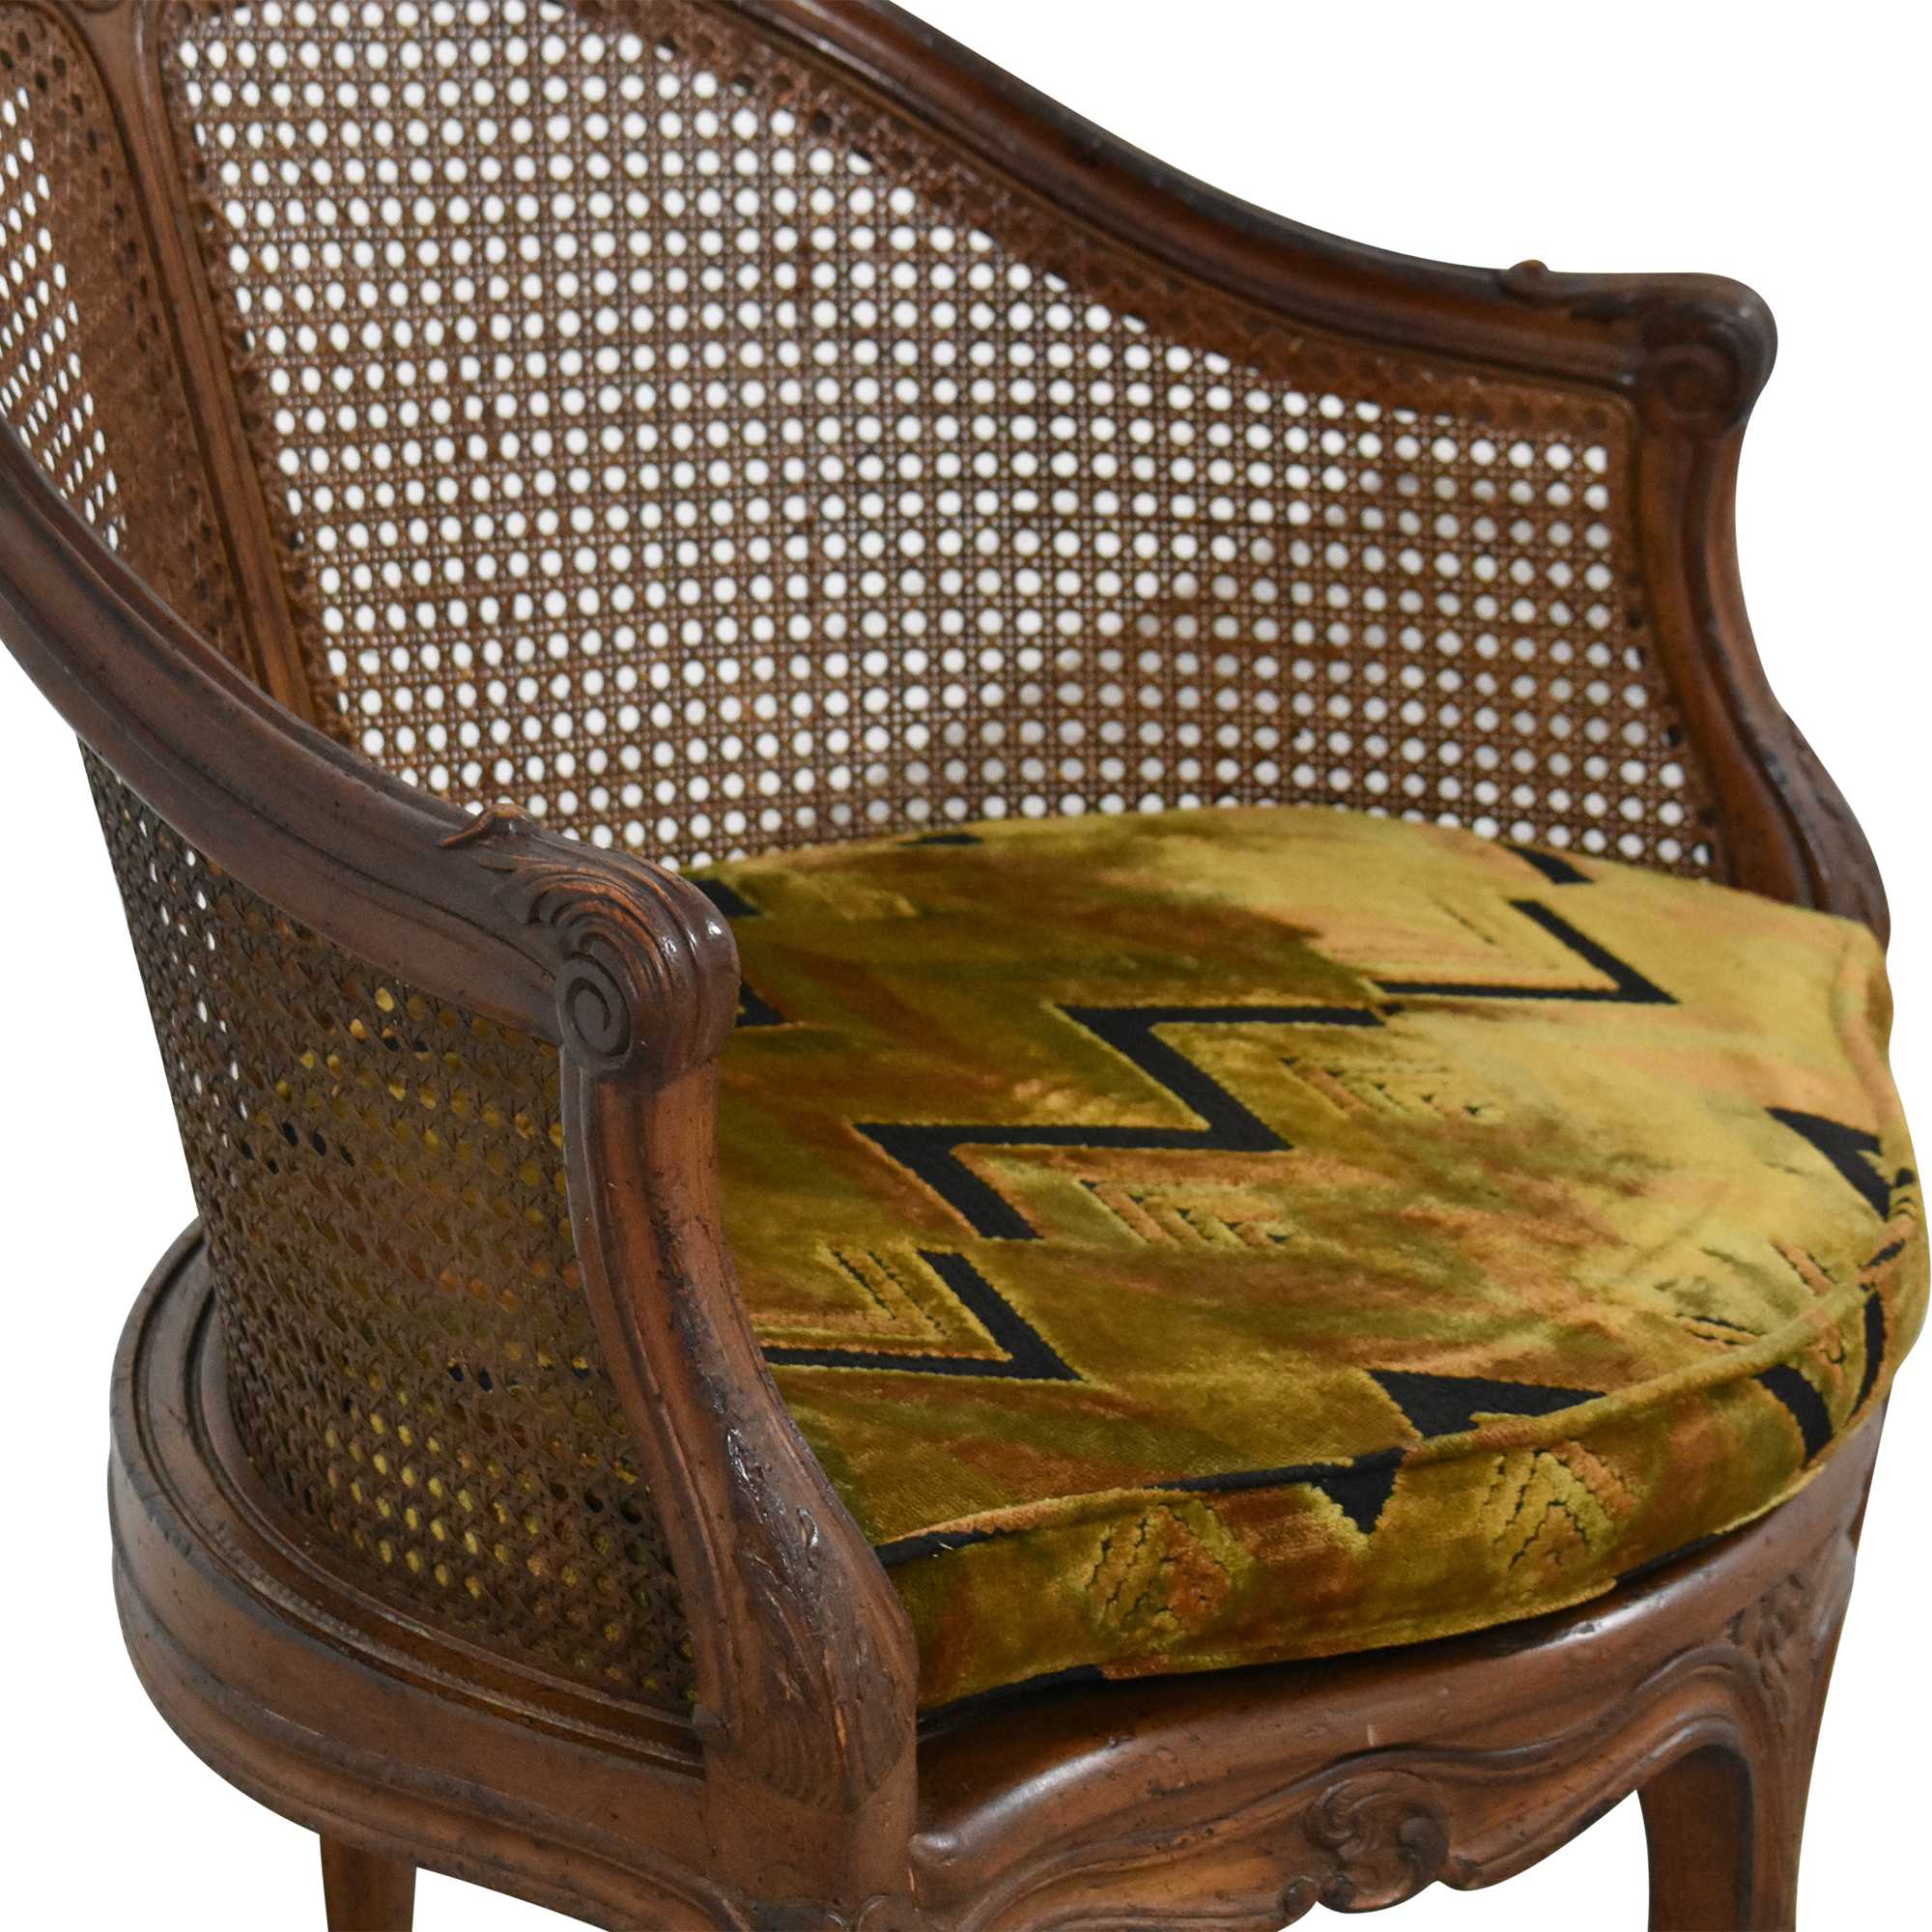 Vintage French-Style Corner Chair Accent Chairs